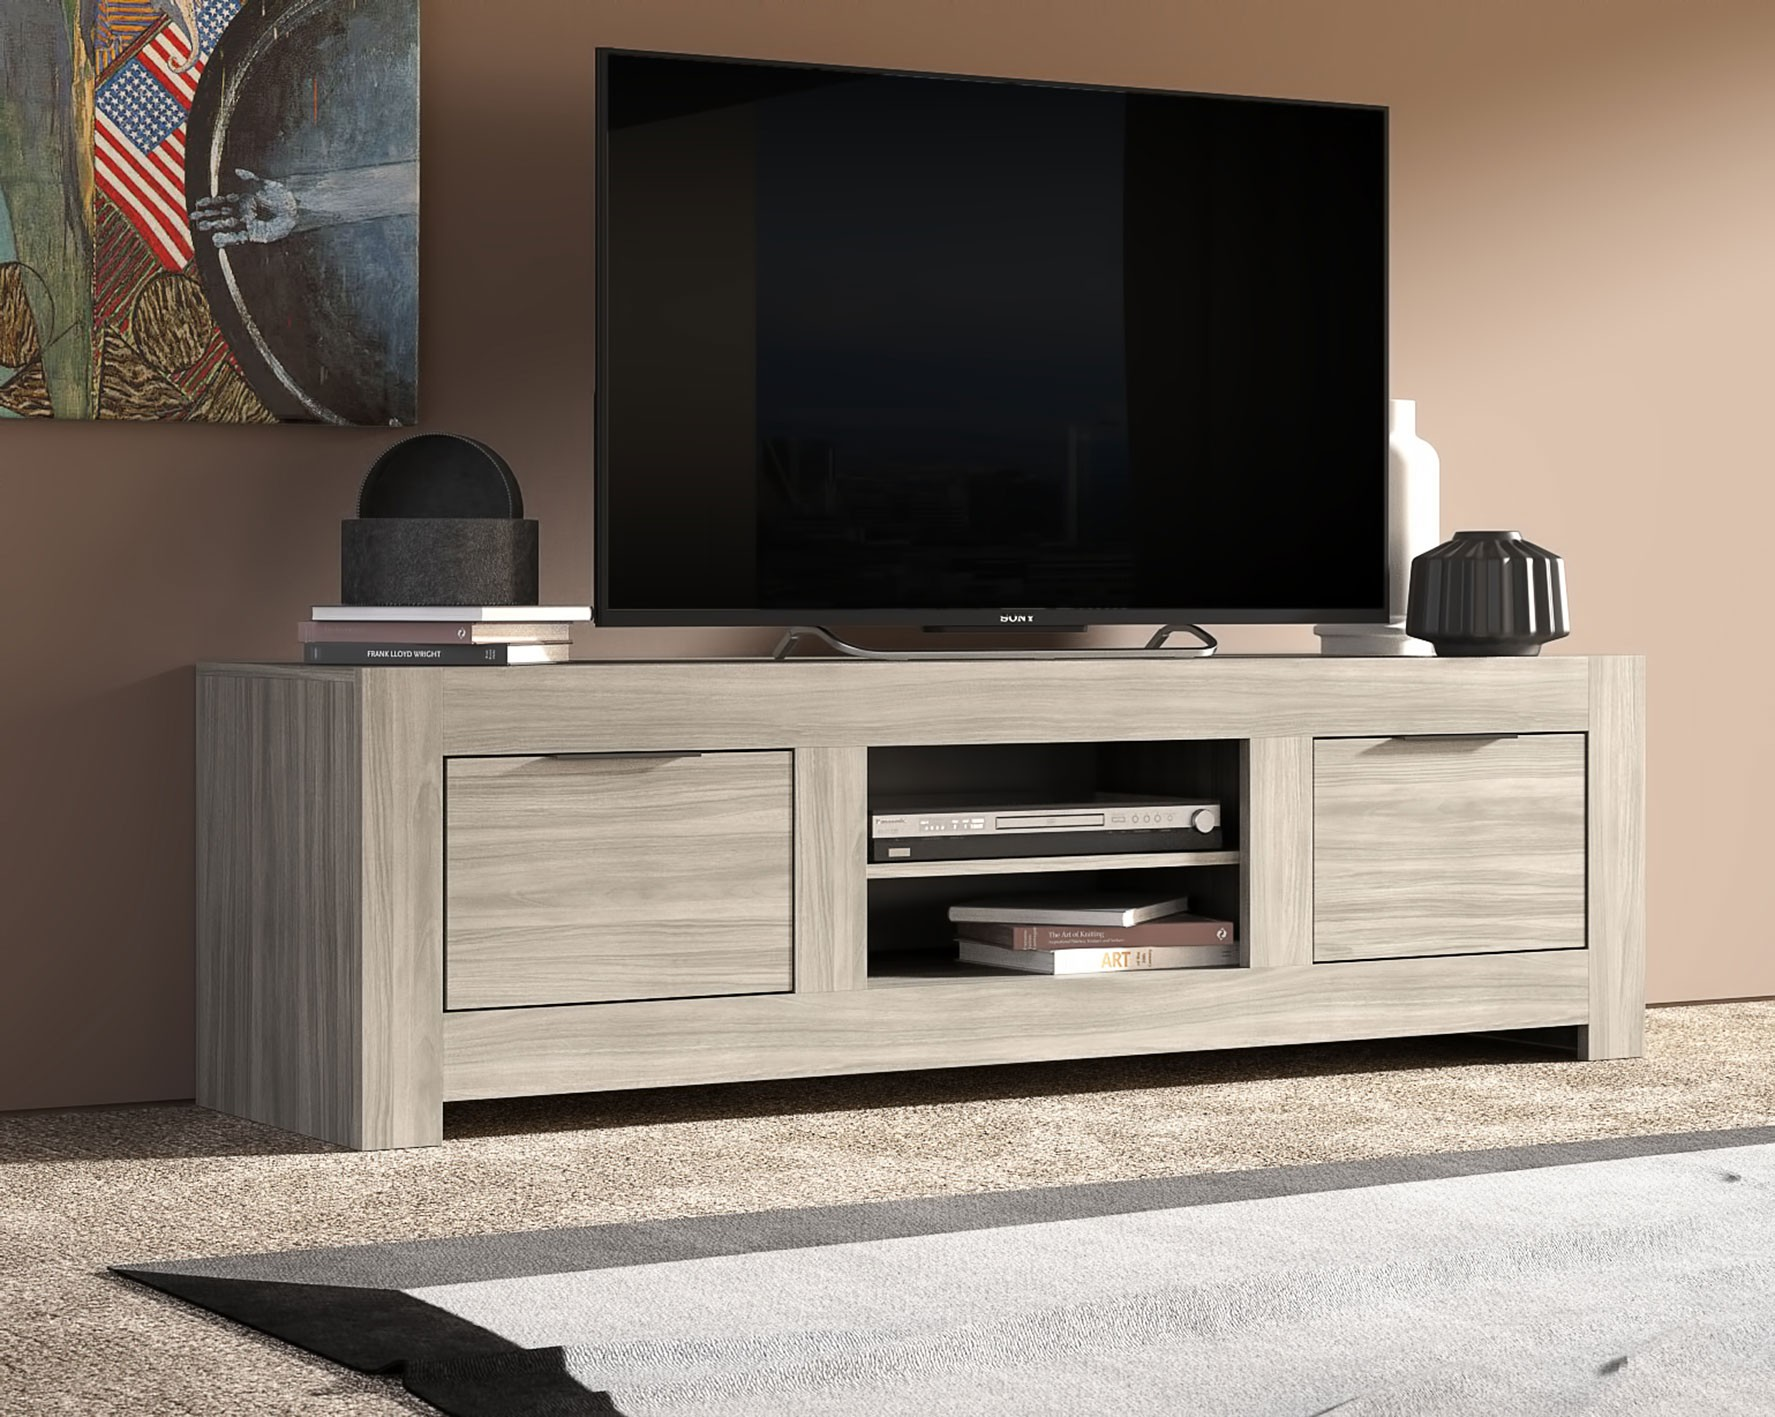 meuble tv joris royal sofa id e de canap et meuble maison